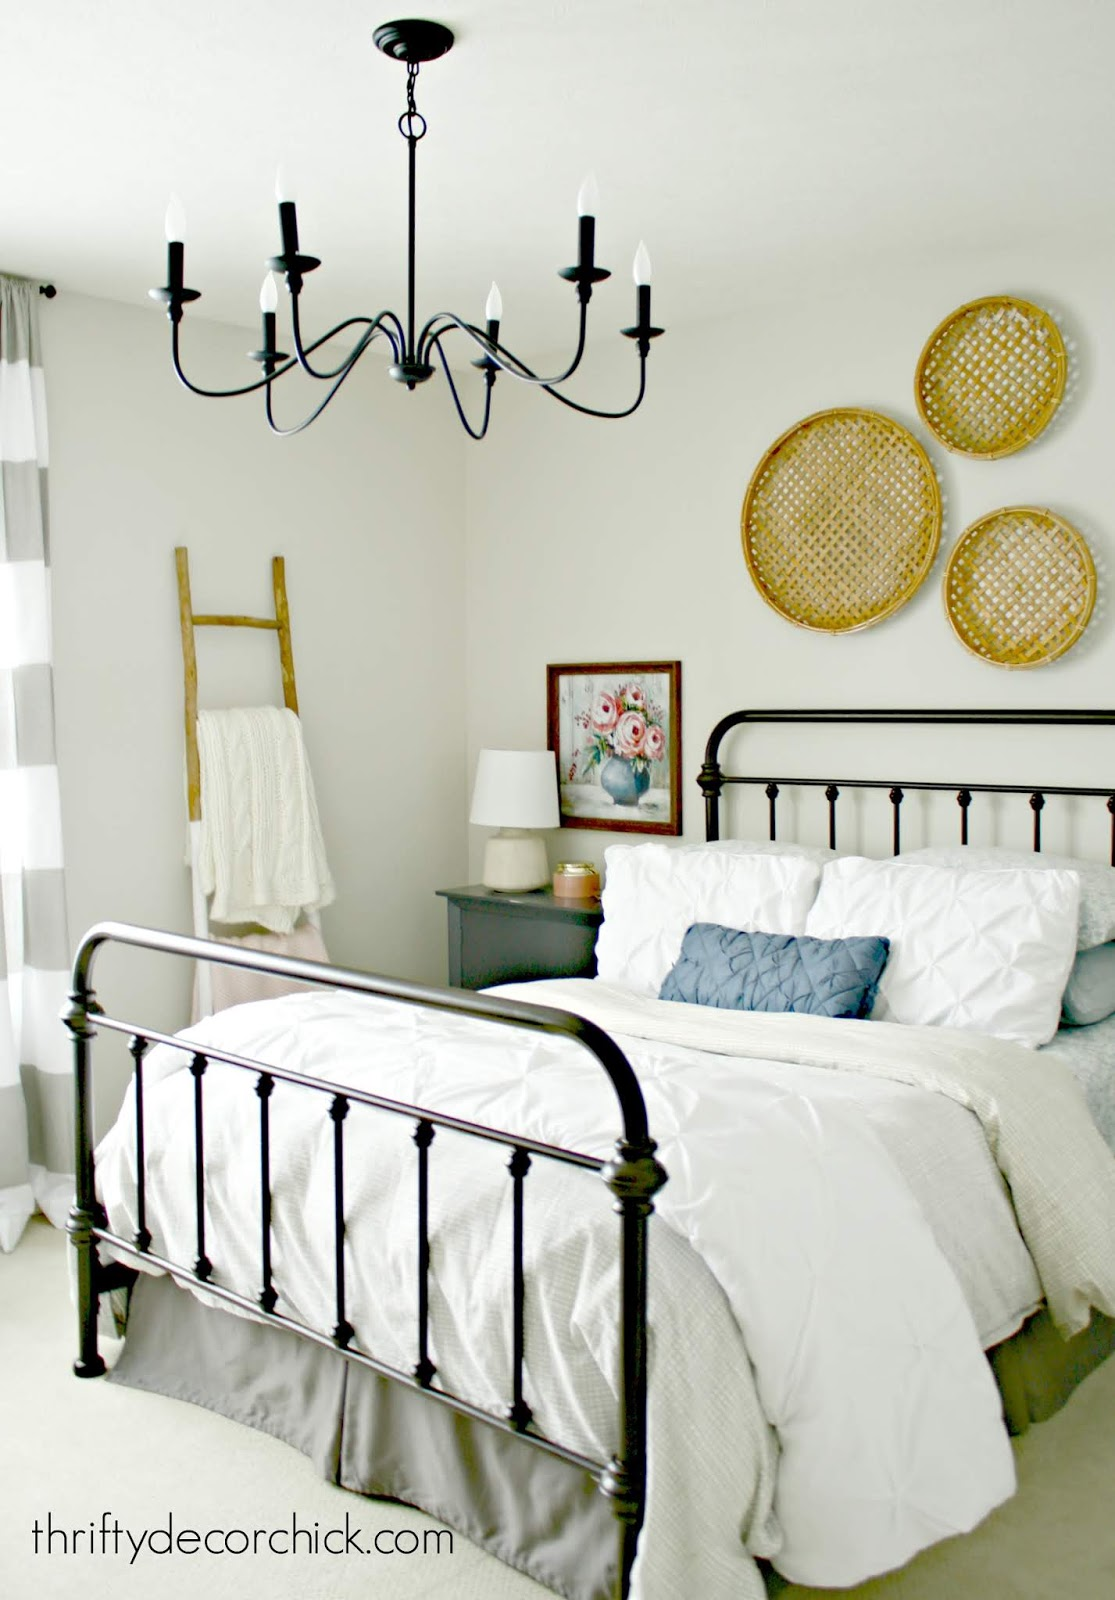 Bedroom with pretty farmhouse touches